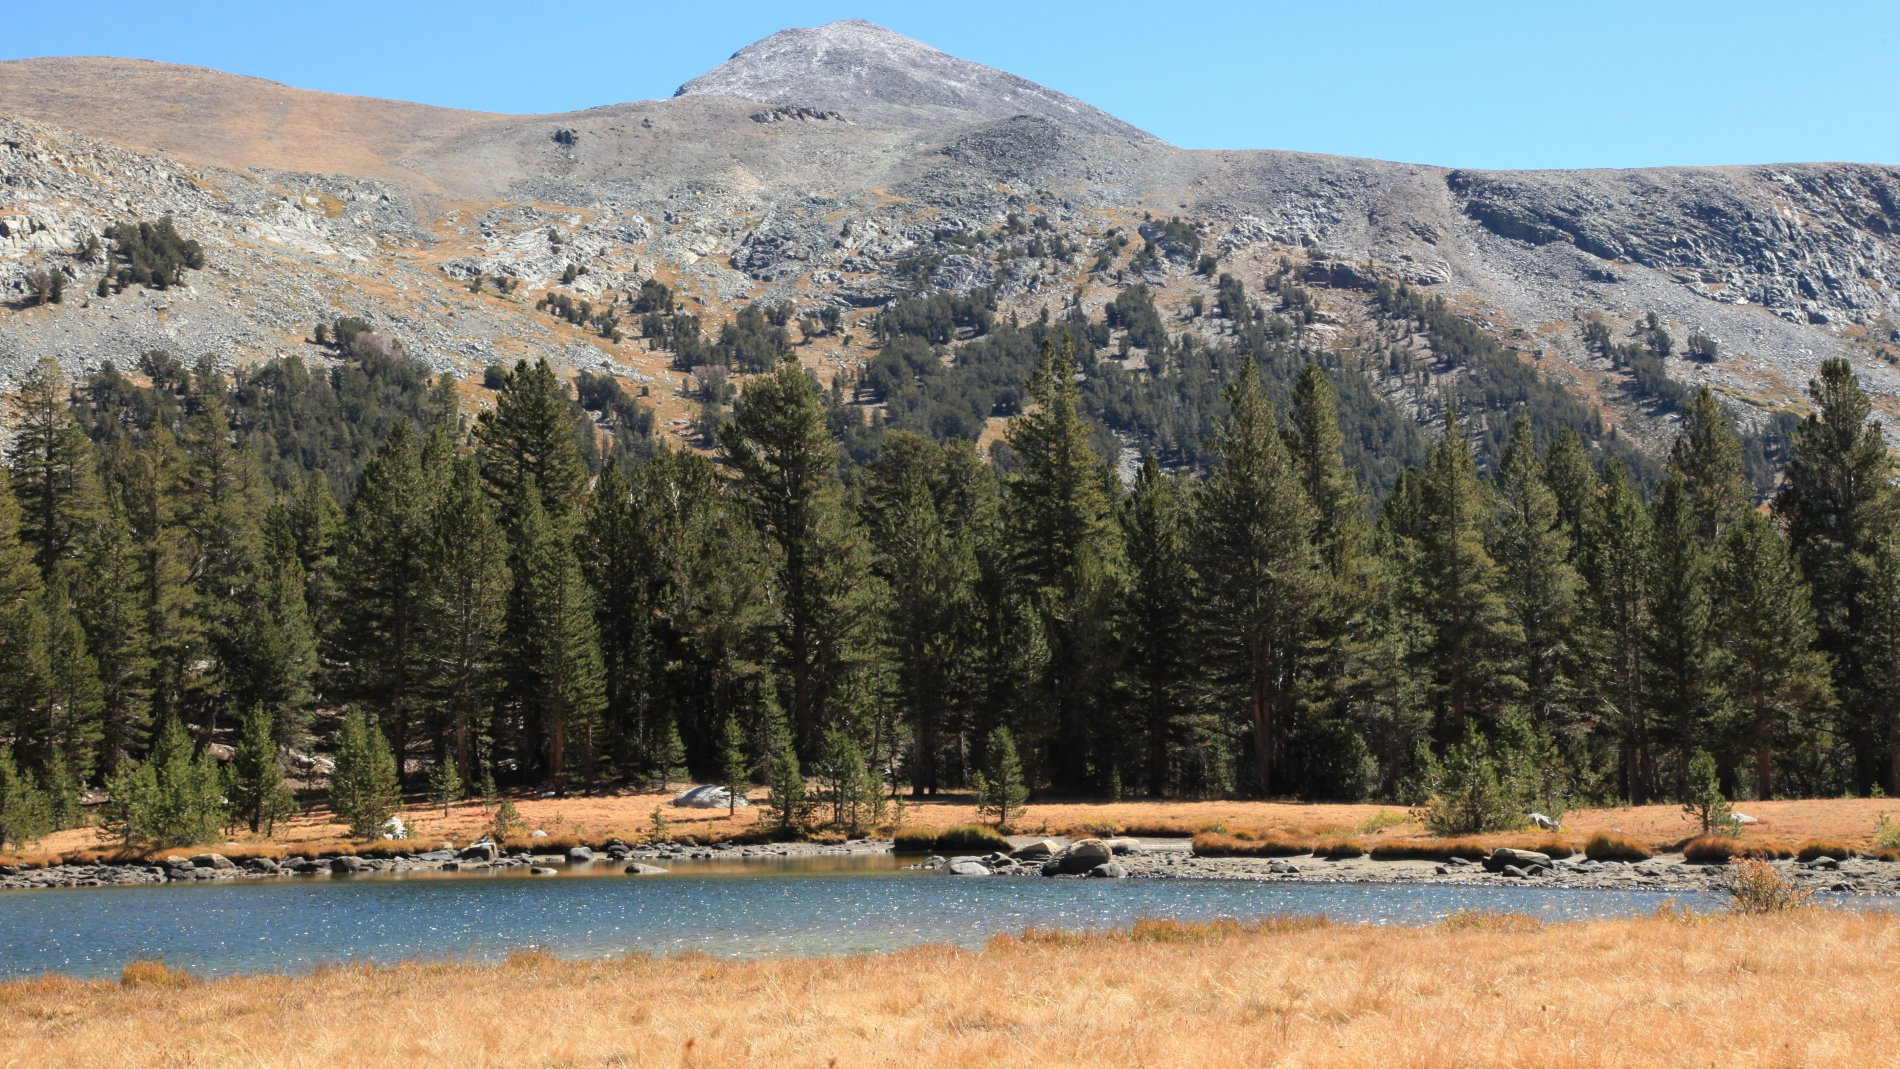 IMG_1260.JPG: Mount Dana in background